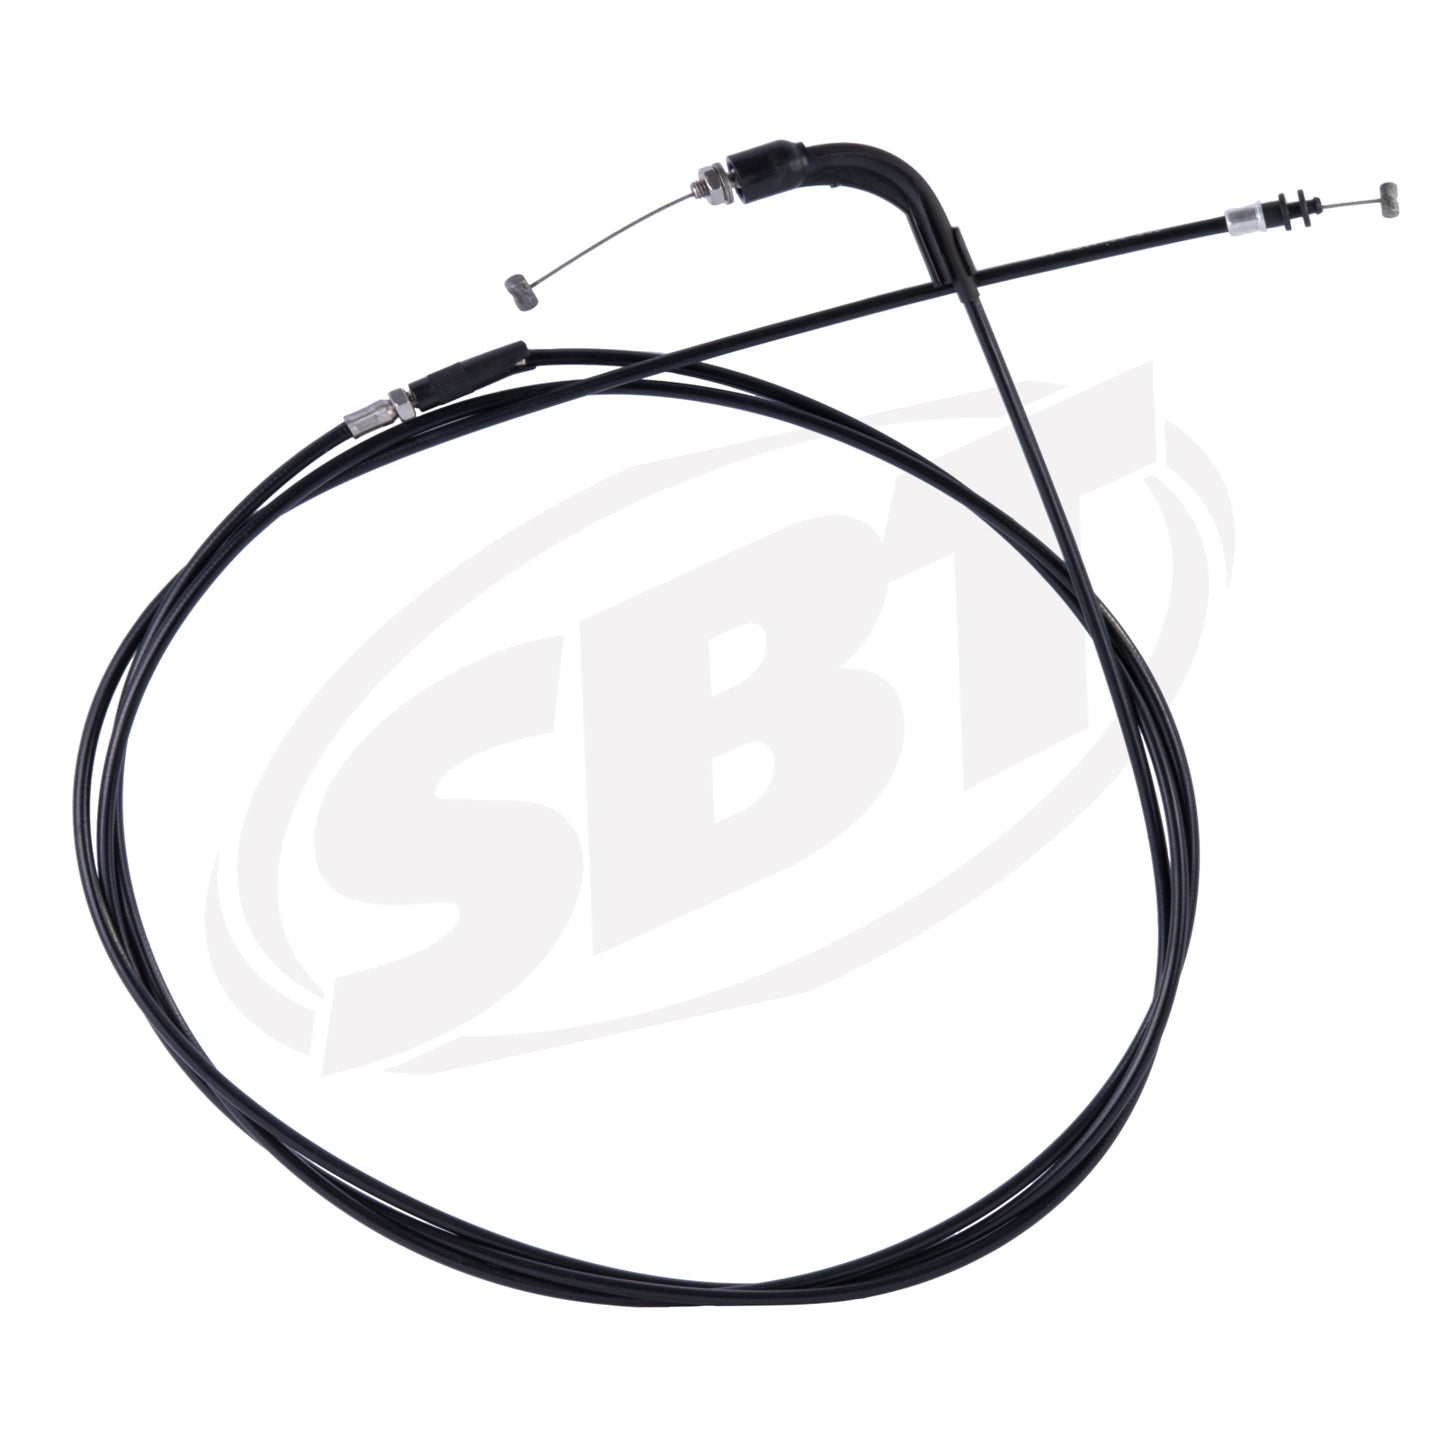 SBT Sea-Doo Throttle Cable LRV DI 204390301 2002